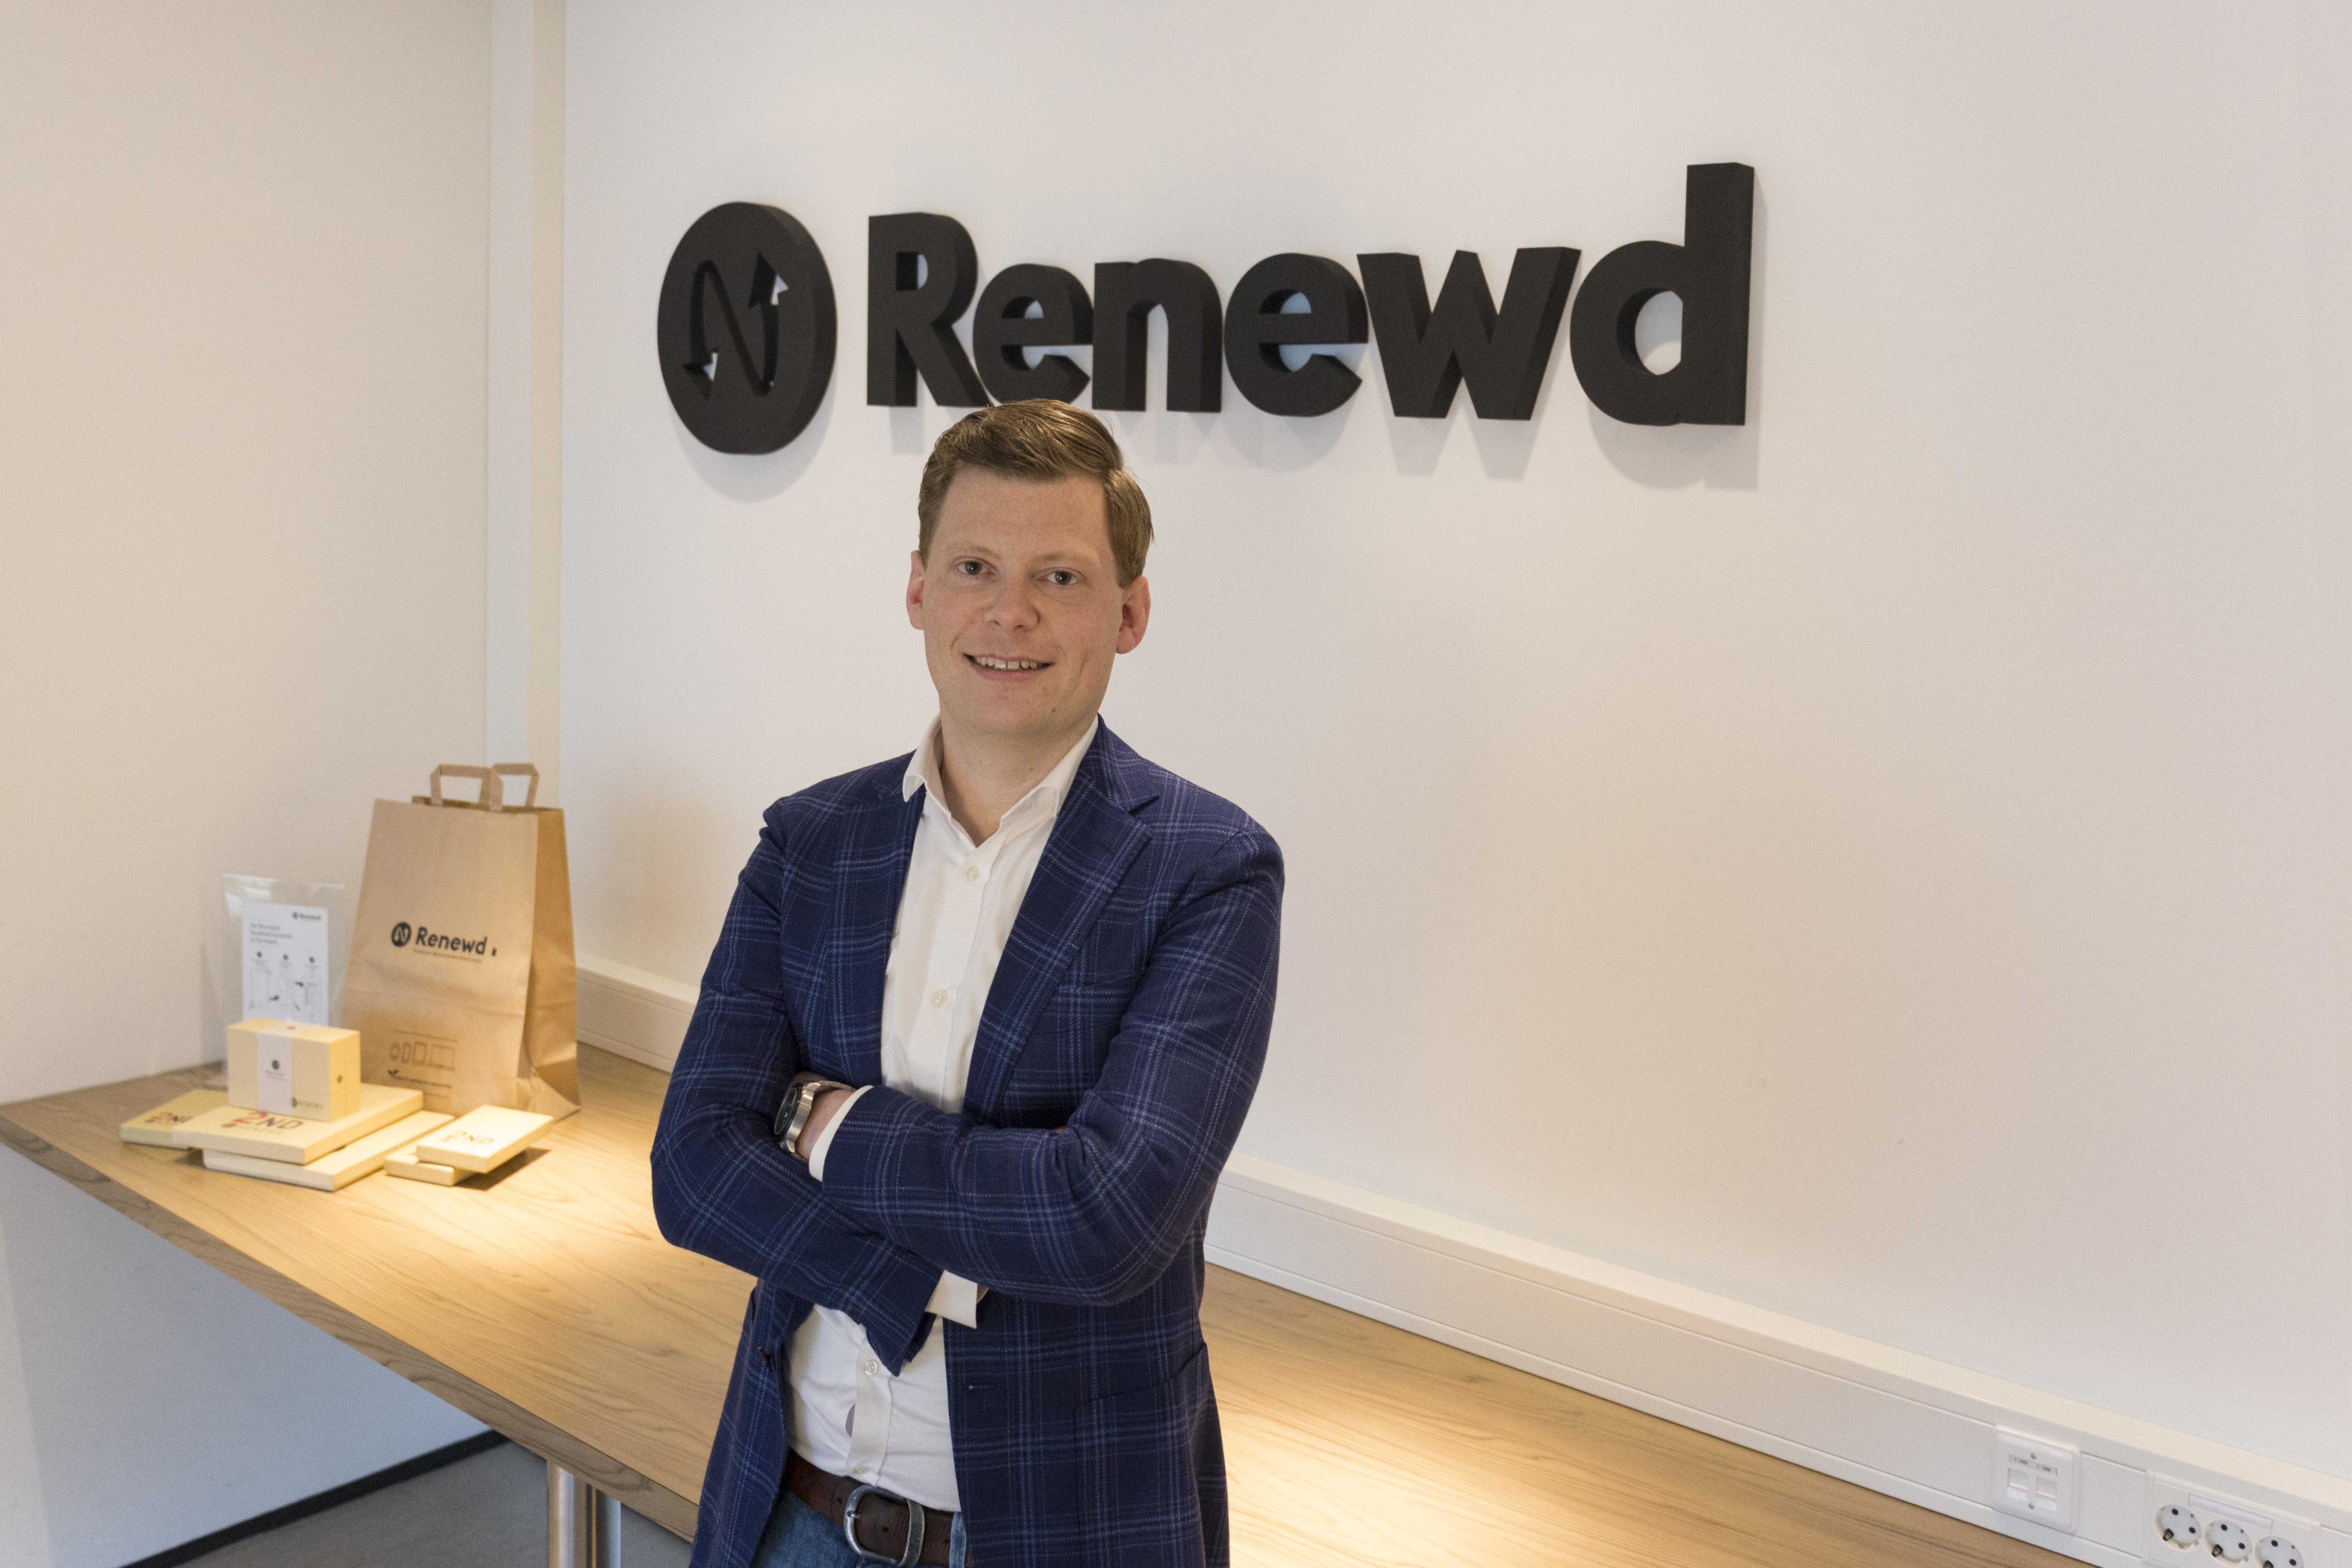 Interview: Bram Wingens over Renewd en de refurbished markt